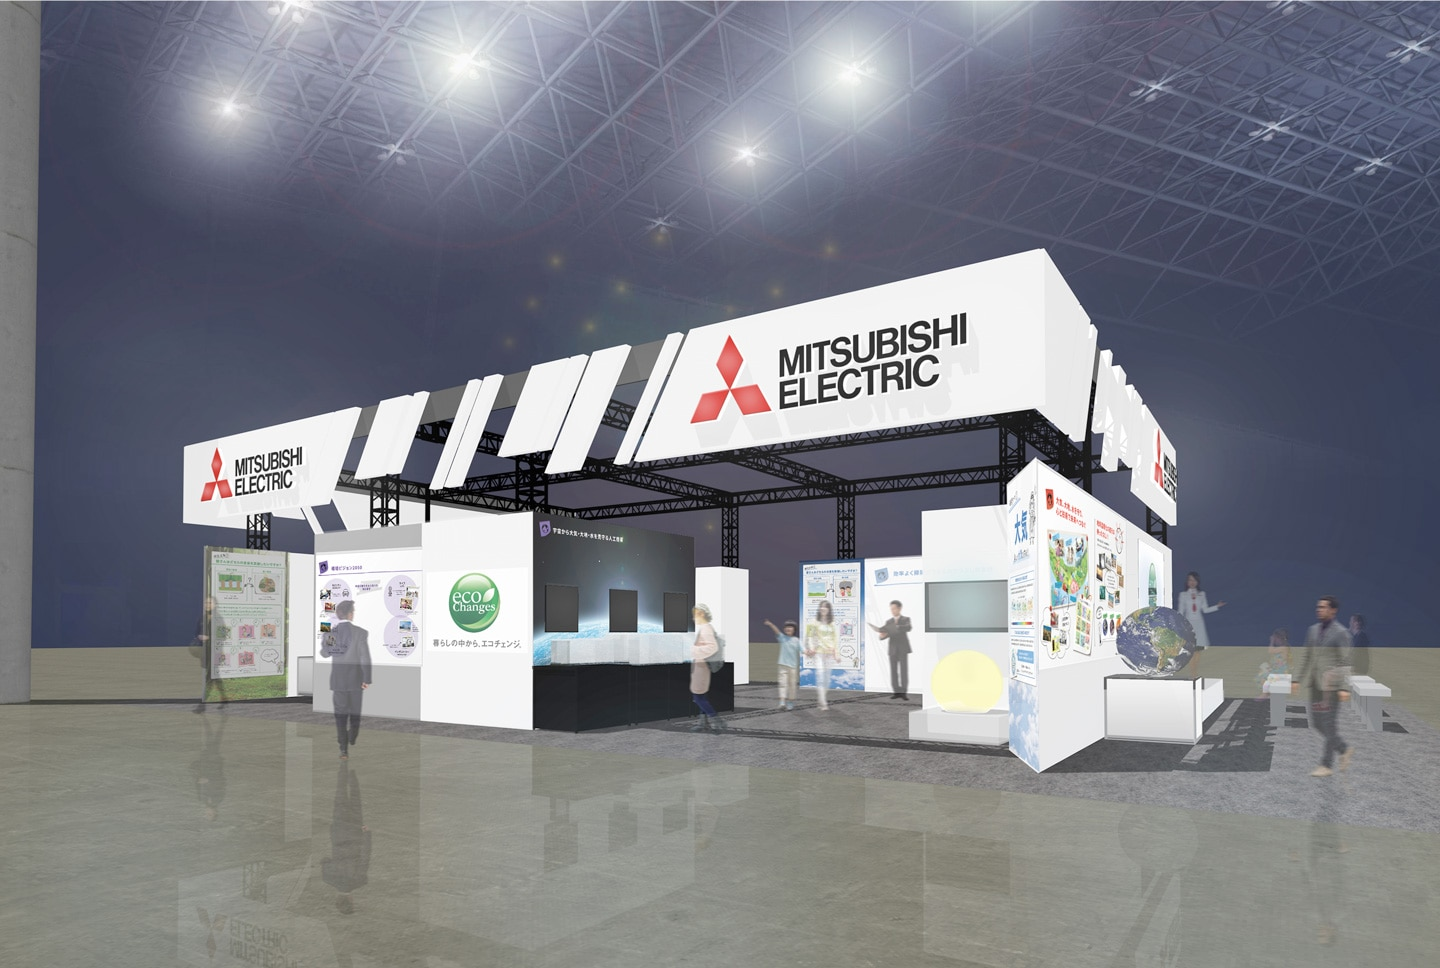 Rendition of Mitsubishi Electric booth